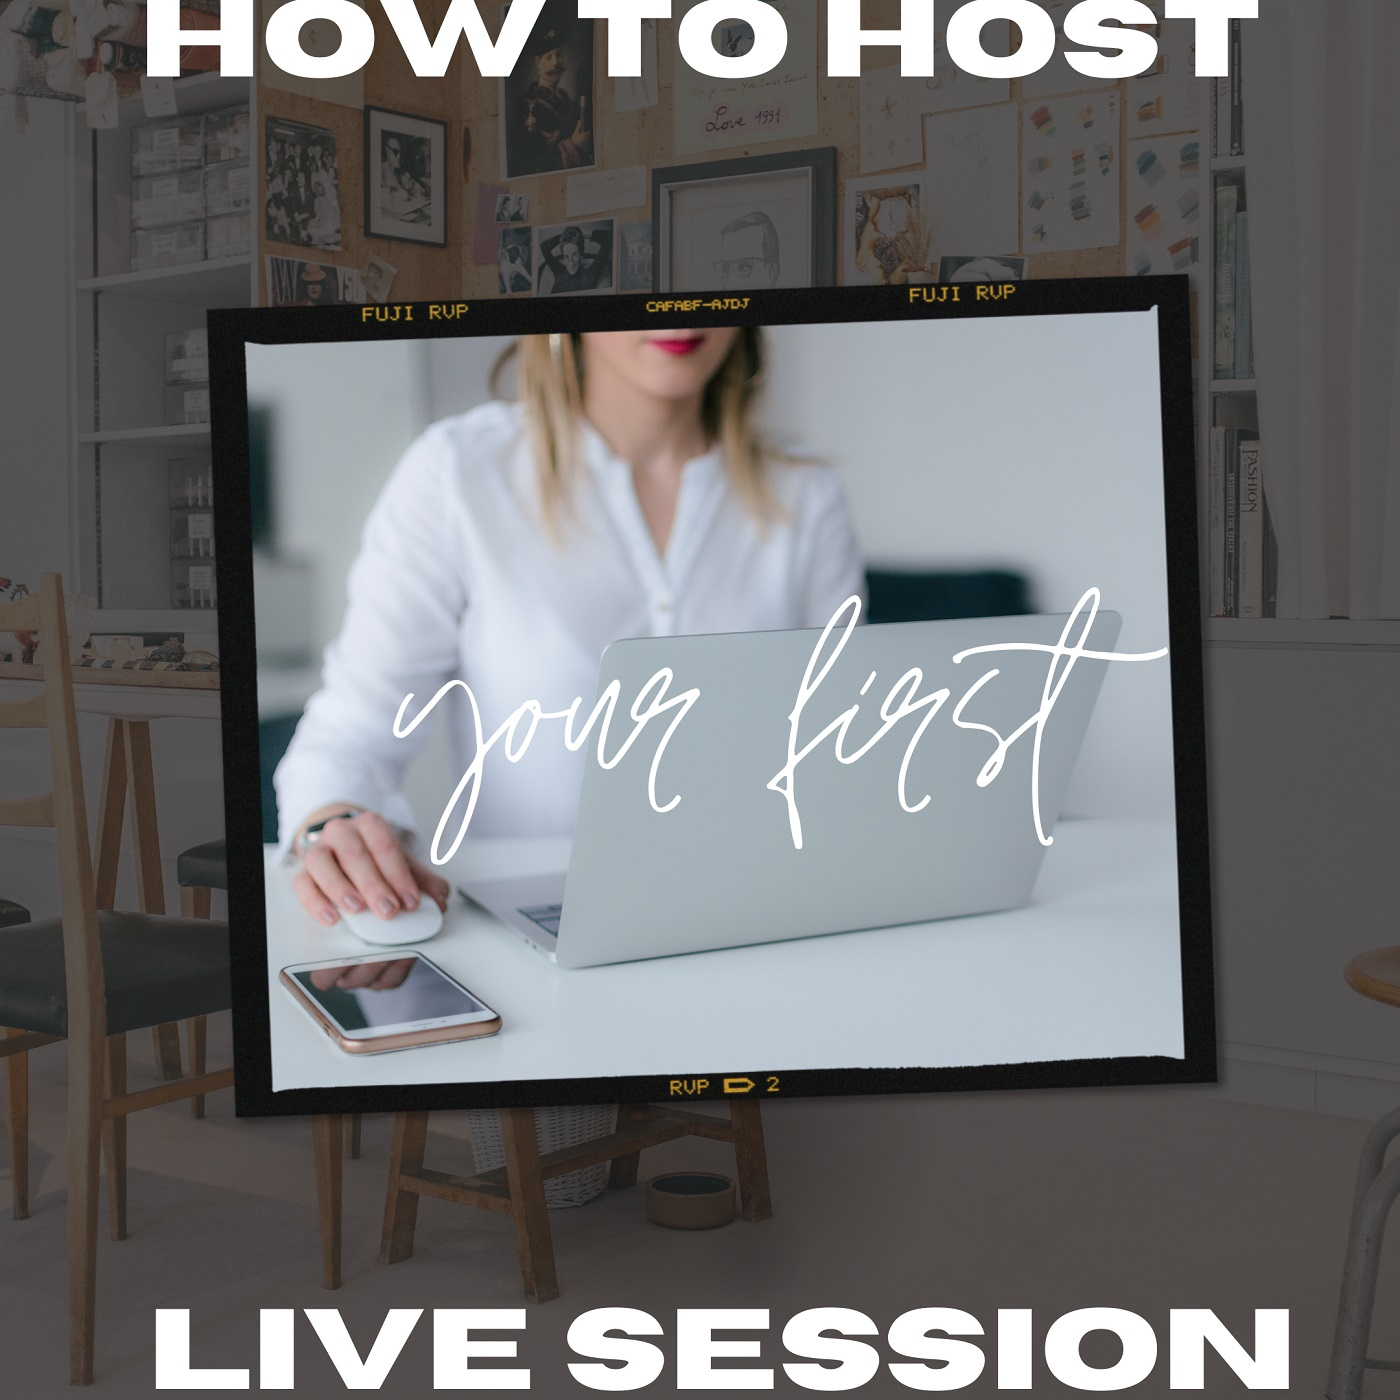 10 Great tips for hosting a successful LIVE session